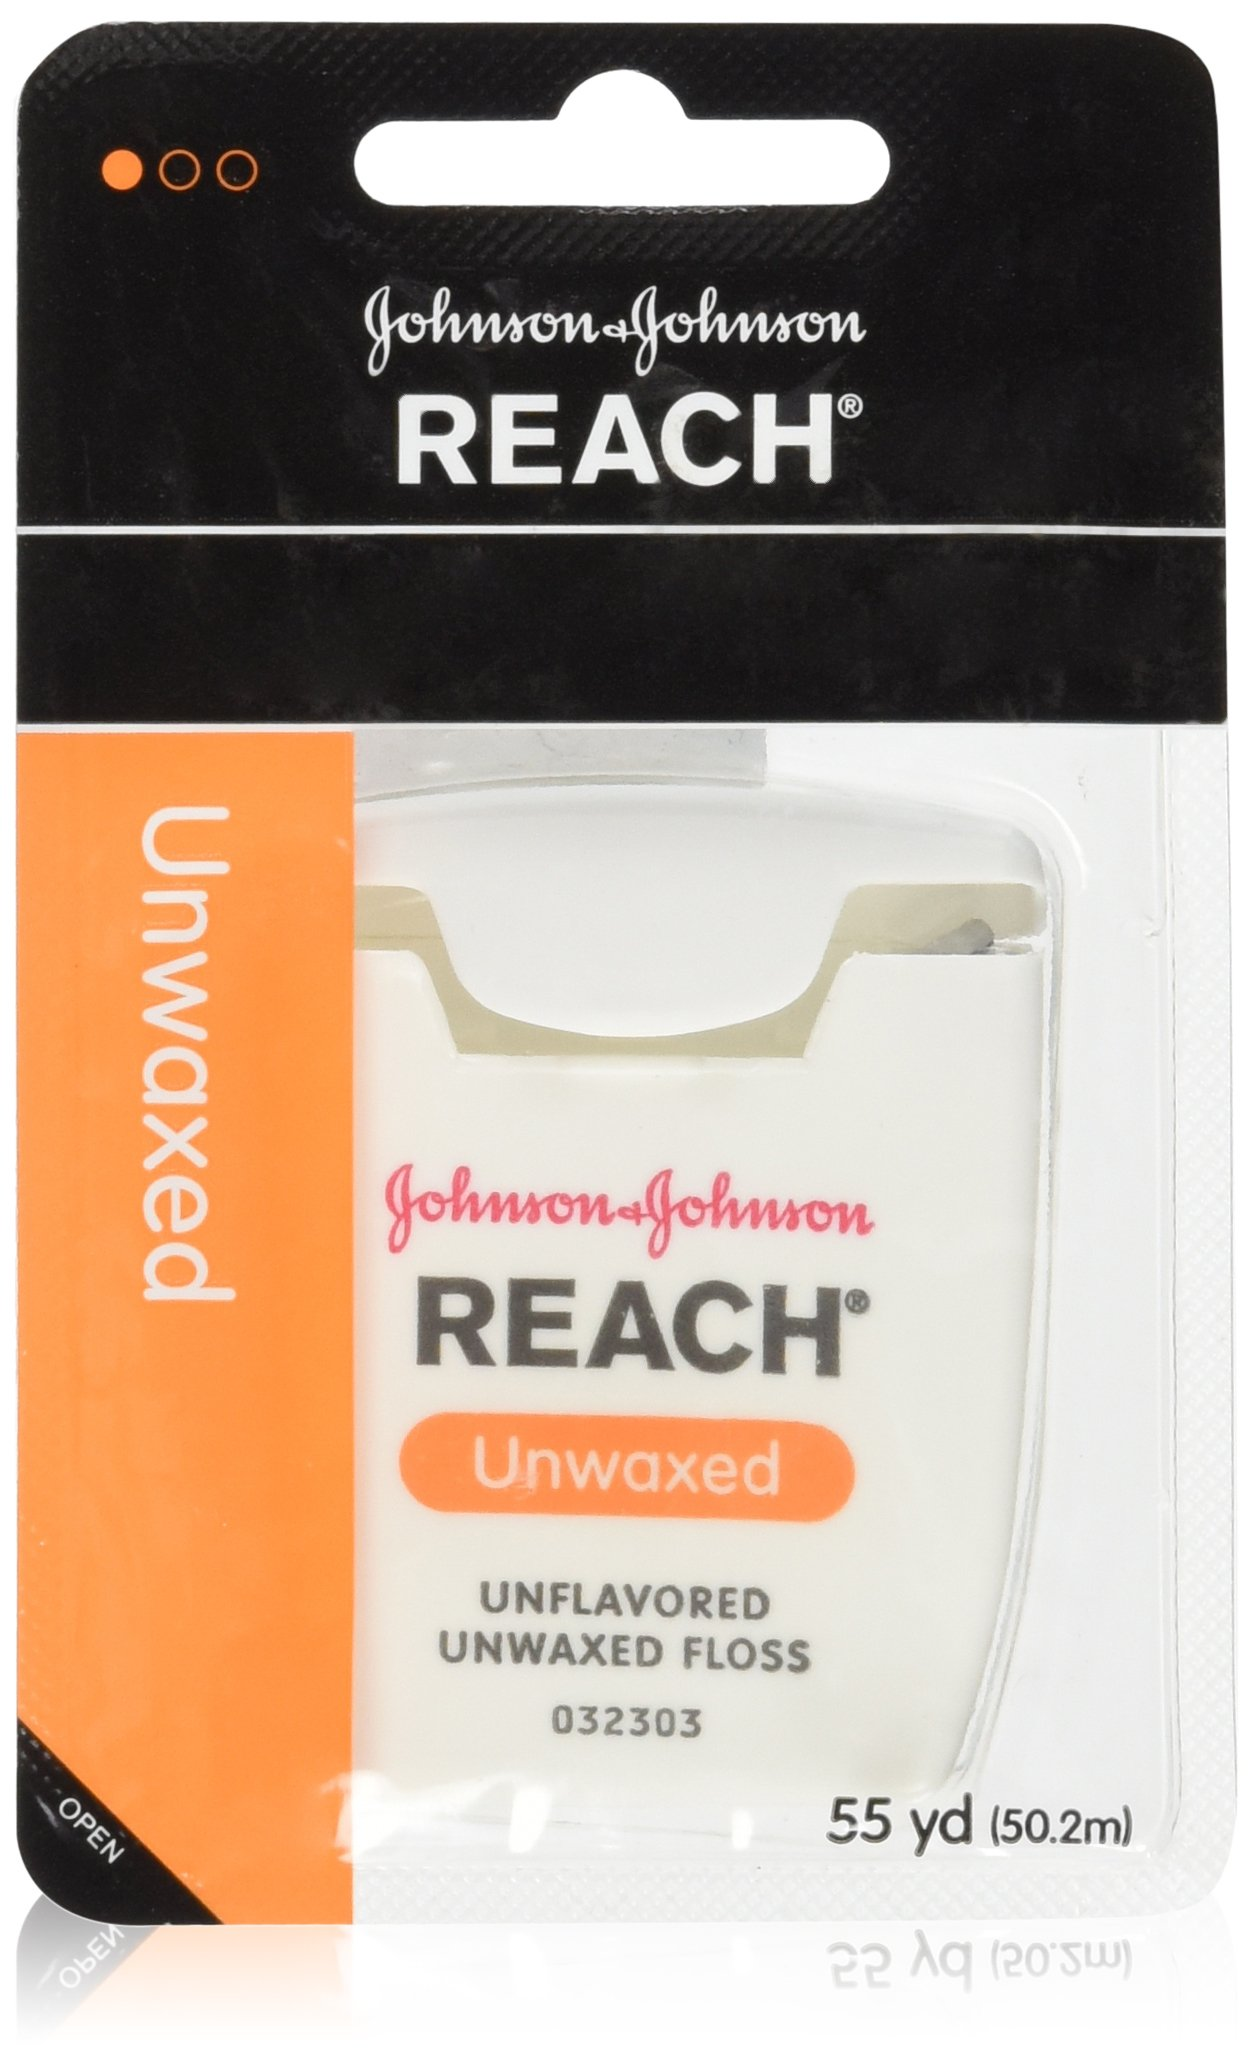 Johnson Johnson Reach Unwaxed Floss Unflavored 55 Yd by Johnson & Johnson